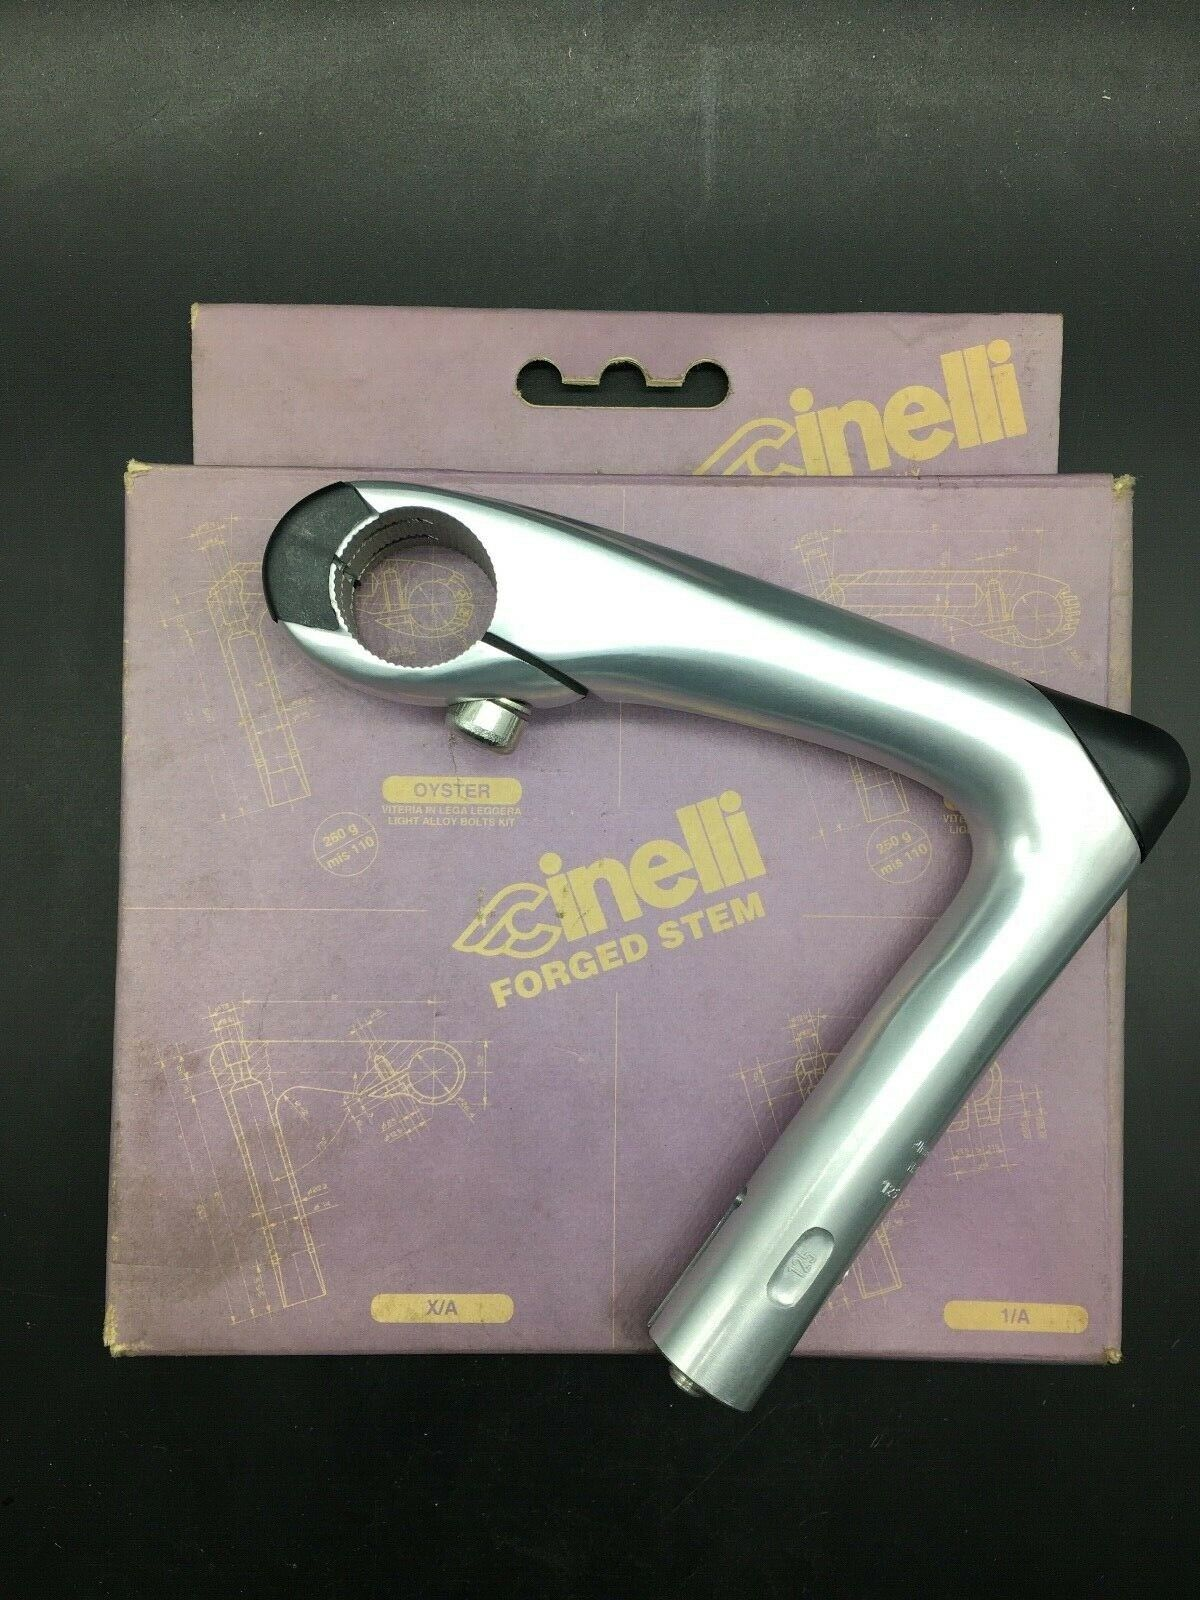 VINTAGE CINELLI OYSTER STEM LENGHT 125MM NOS NIB OPENABLE HINGED